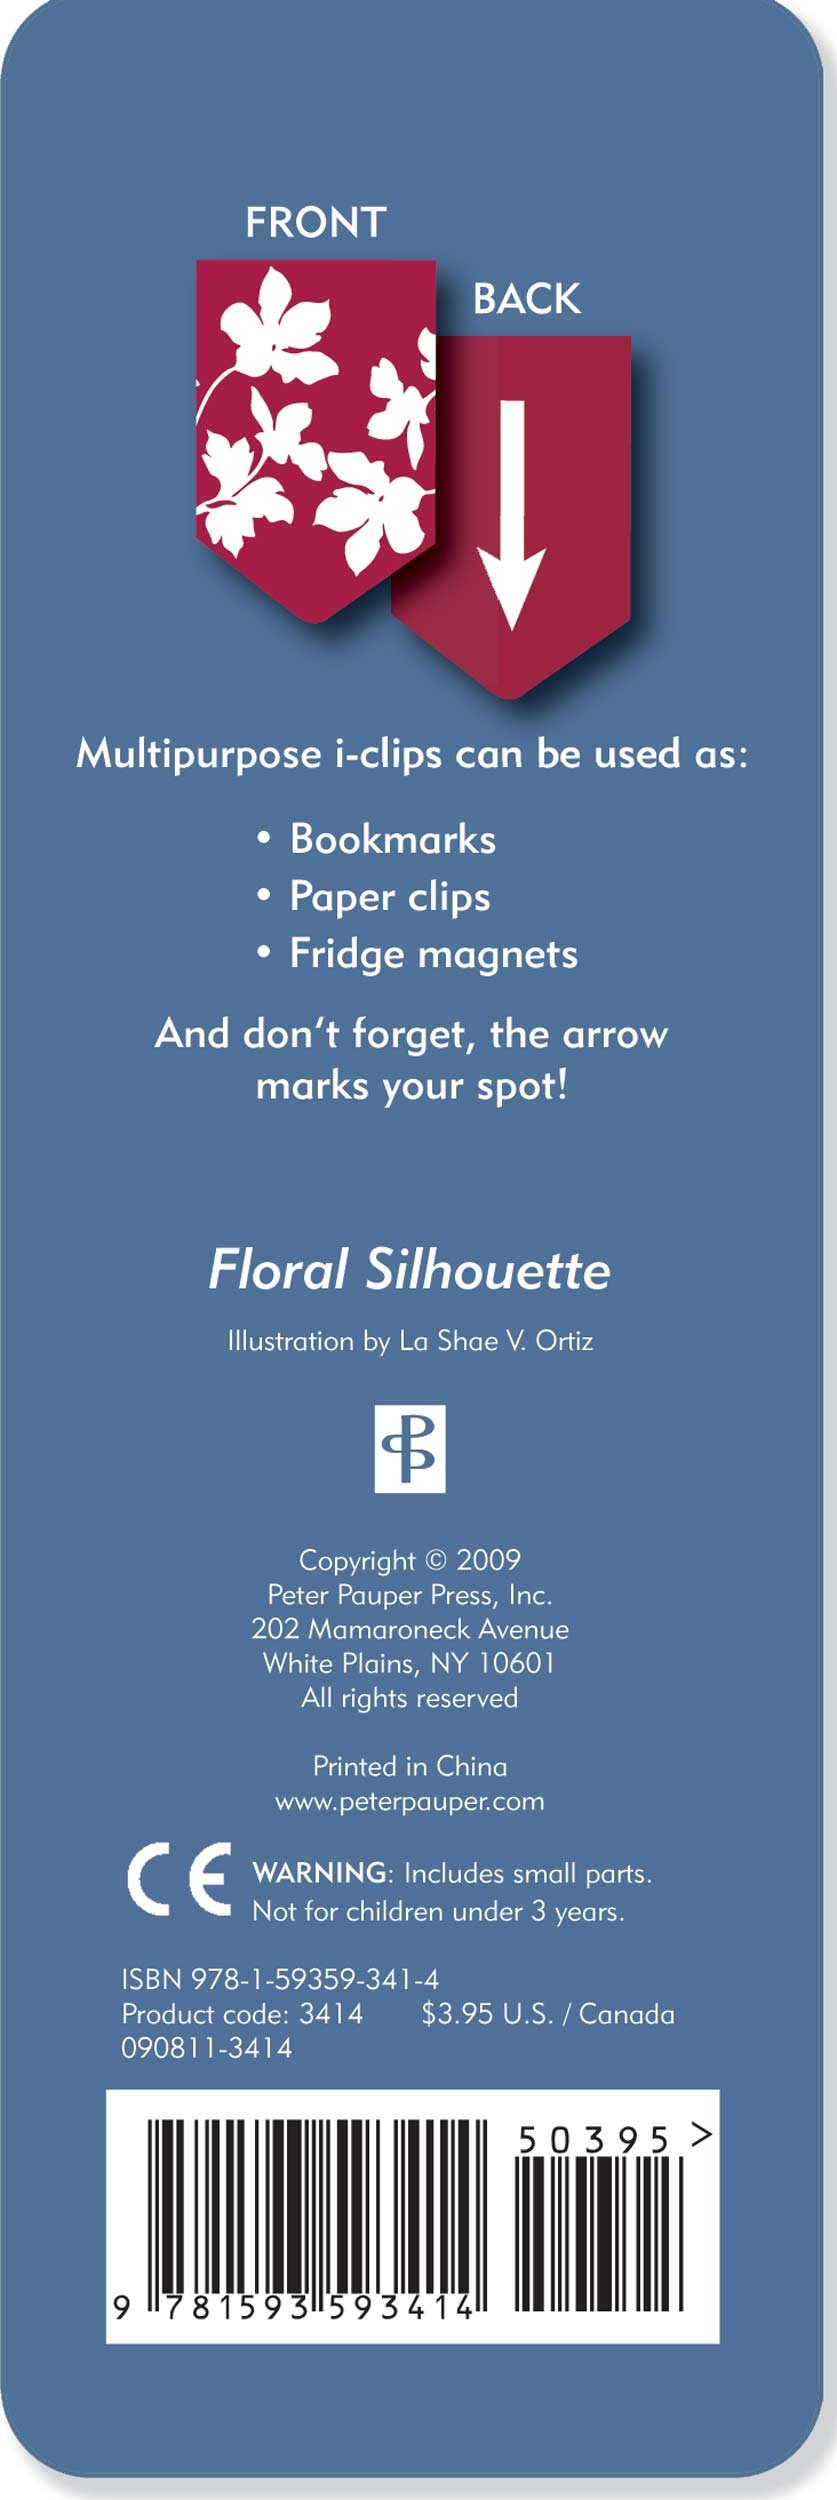 Floral Silhouette i-Clip Magnetic Page Markers (Set of 8 Magnetic Bookmarks) by Peter Pauper Press (Image #1)